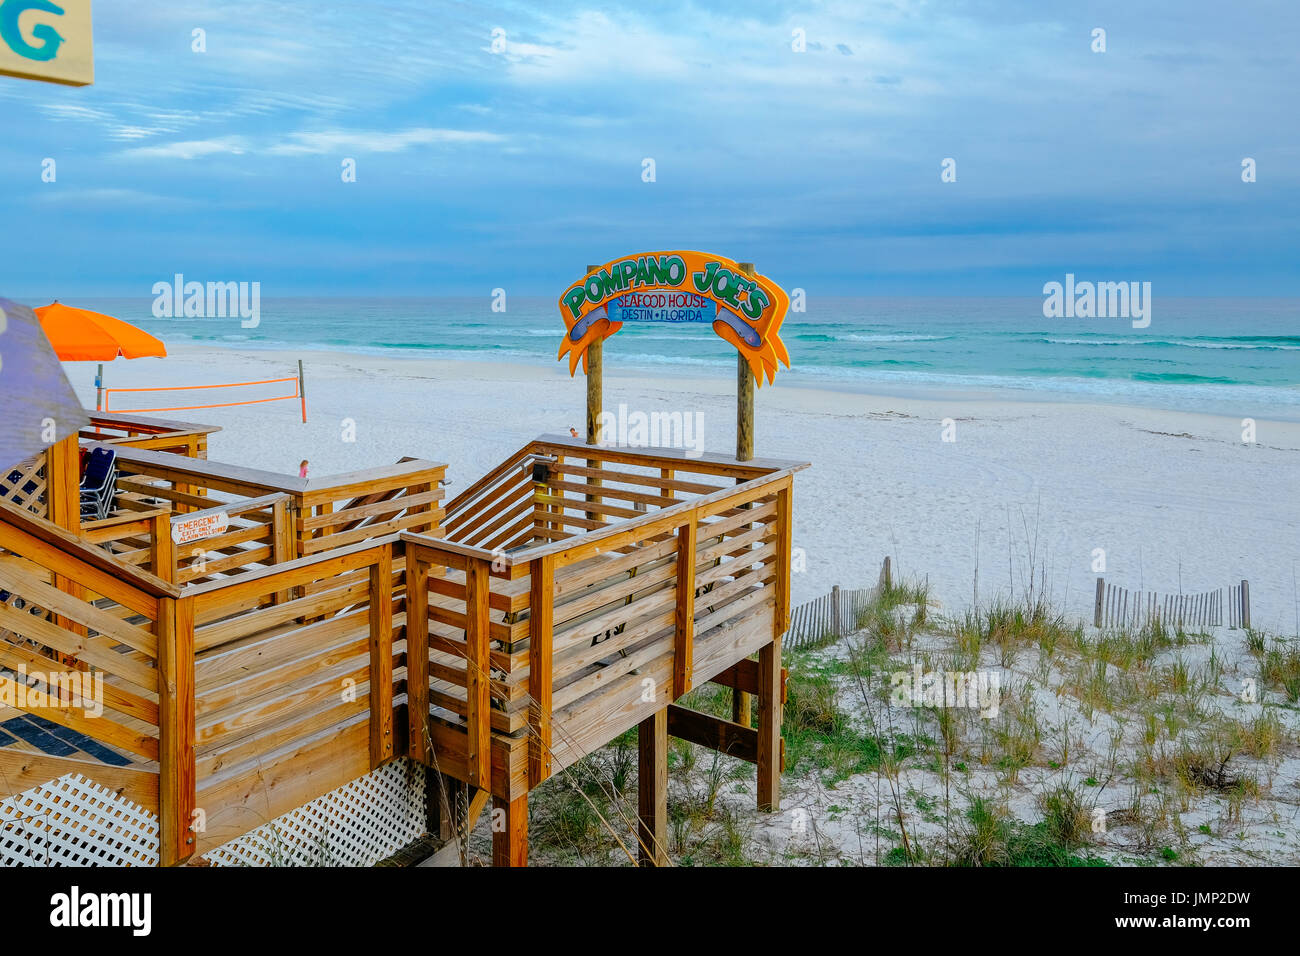 Pompano Joe's restaurant and bar beach entrance, at Miramar Beach,east of Destin, Florida, USA, on the Gulf of Mexico. - Stock Image